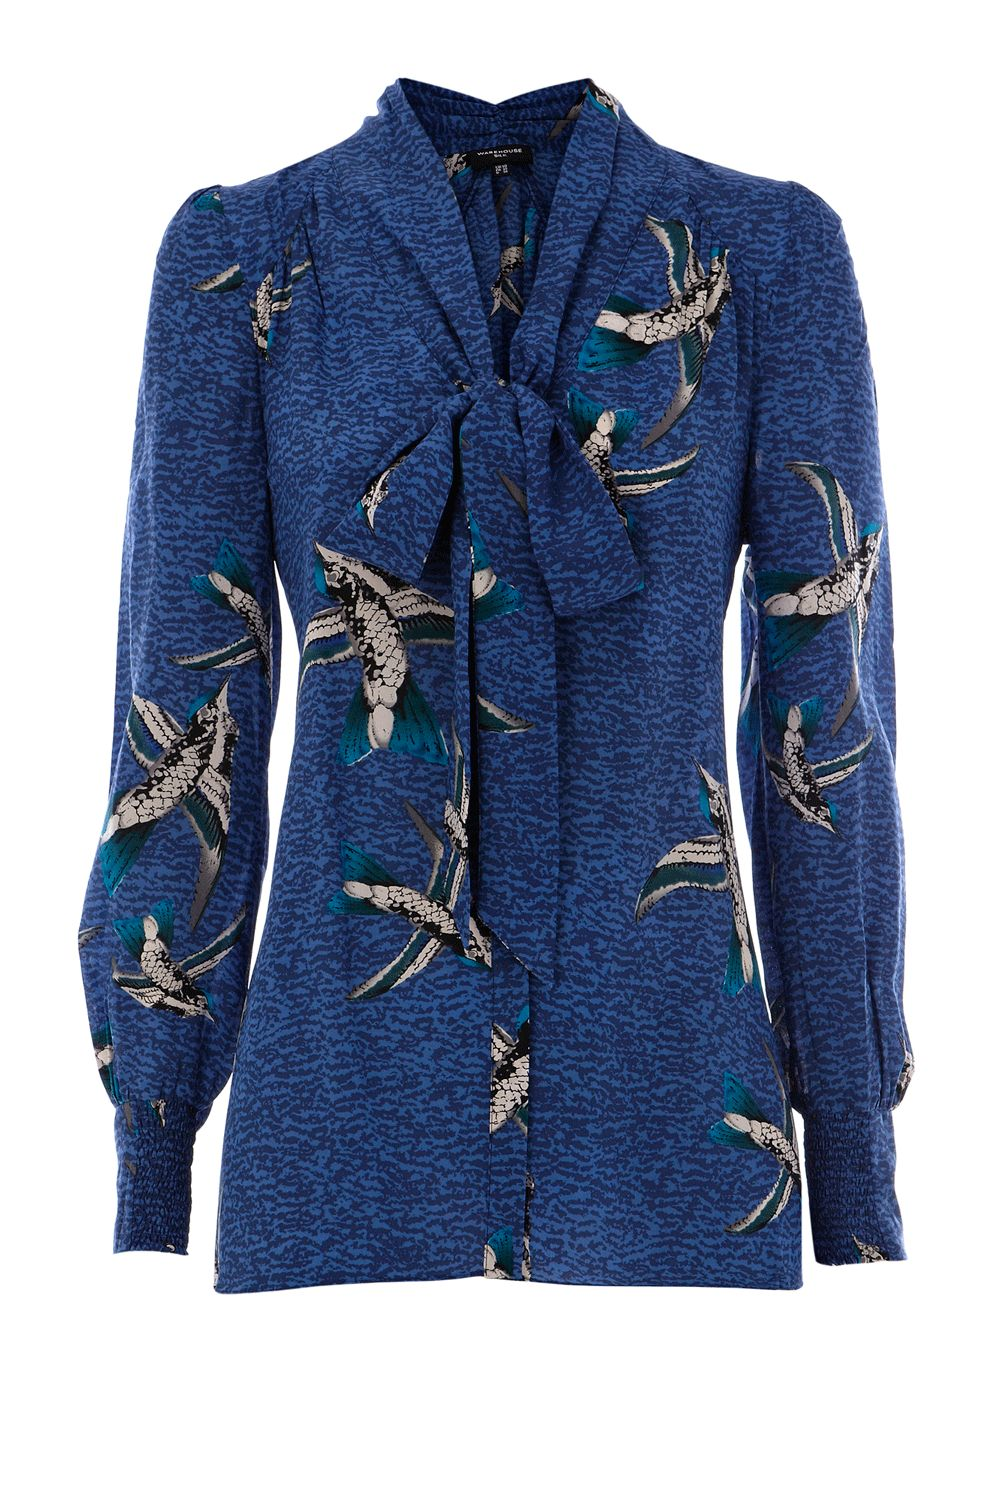 Warehouse Womens Warehouse Skylark print blouse, Blue product image